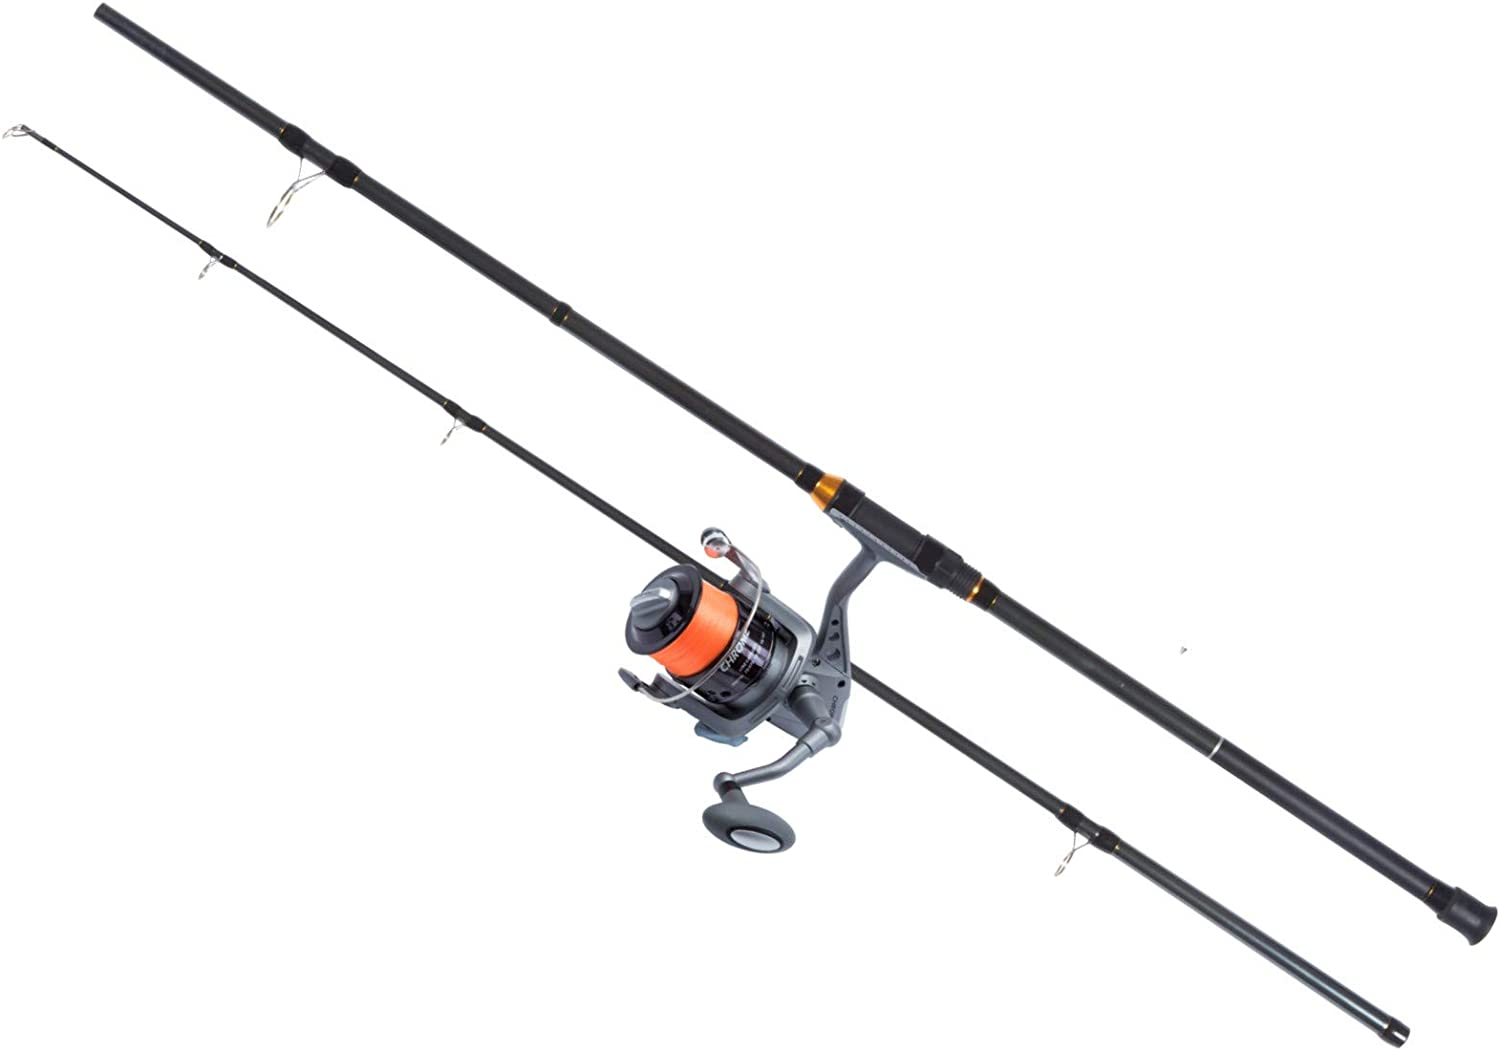 Fishzone MACKEREL & BASS SEA SPIN COMBO 9'2.7m 80g 2 Piece Marine Rod with THUNDER series size 60 Front Drag Spin Reel pre loaded with 15lb Line